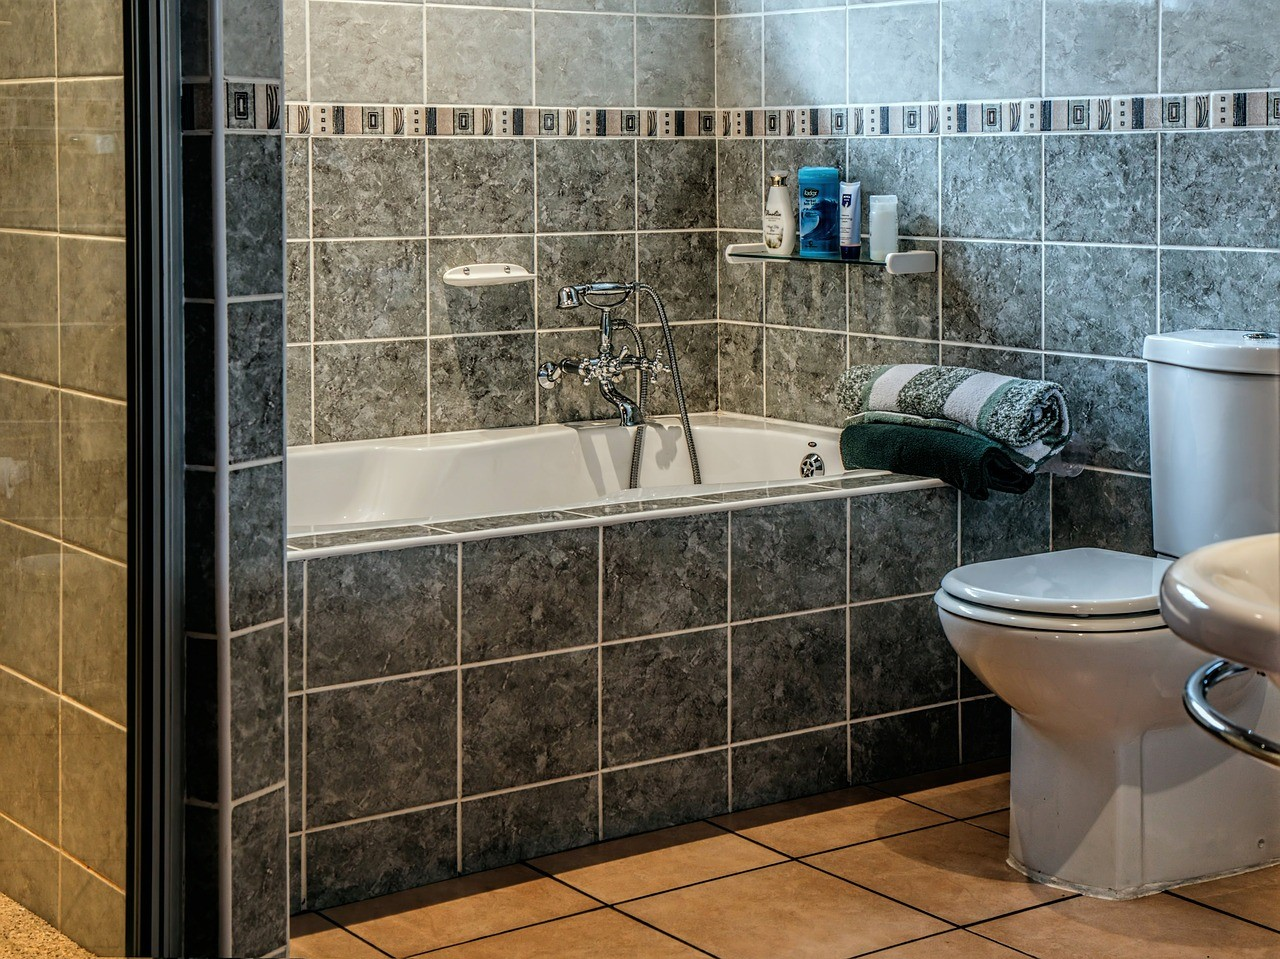 Cleaning Hacks for Bathroom Tiles  Tiles Direct